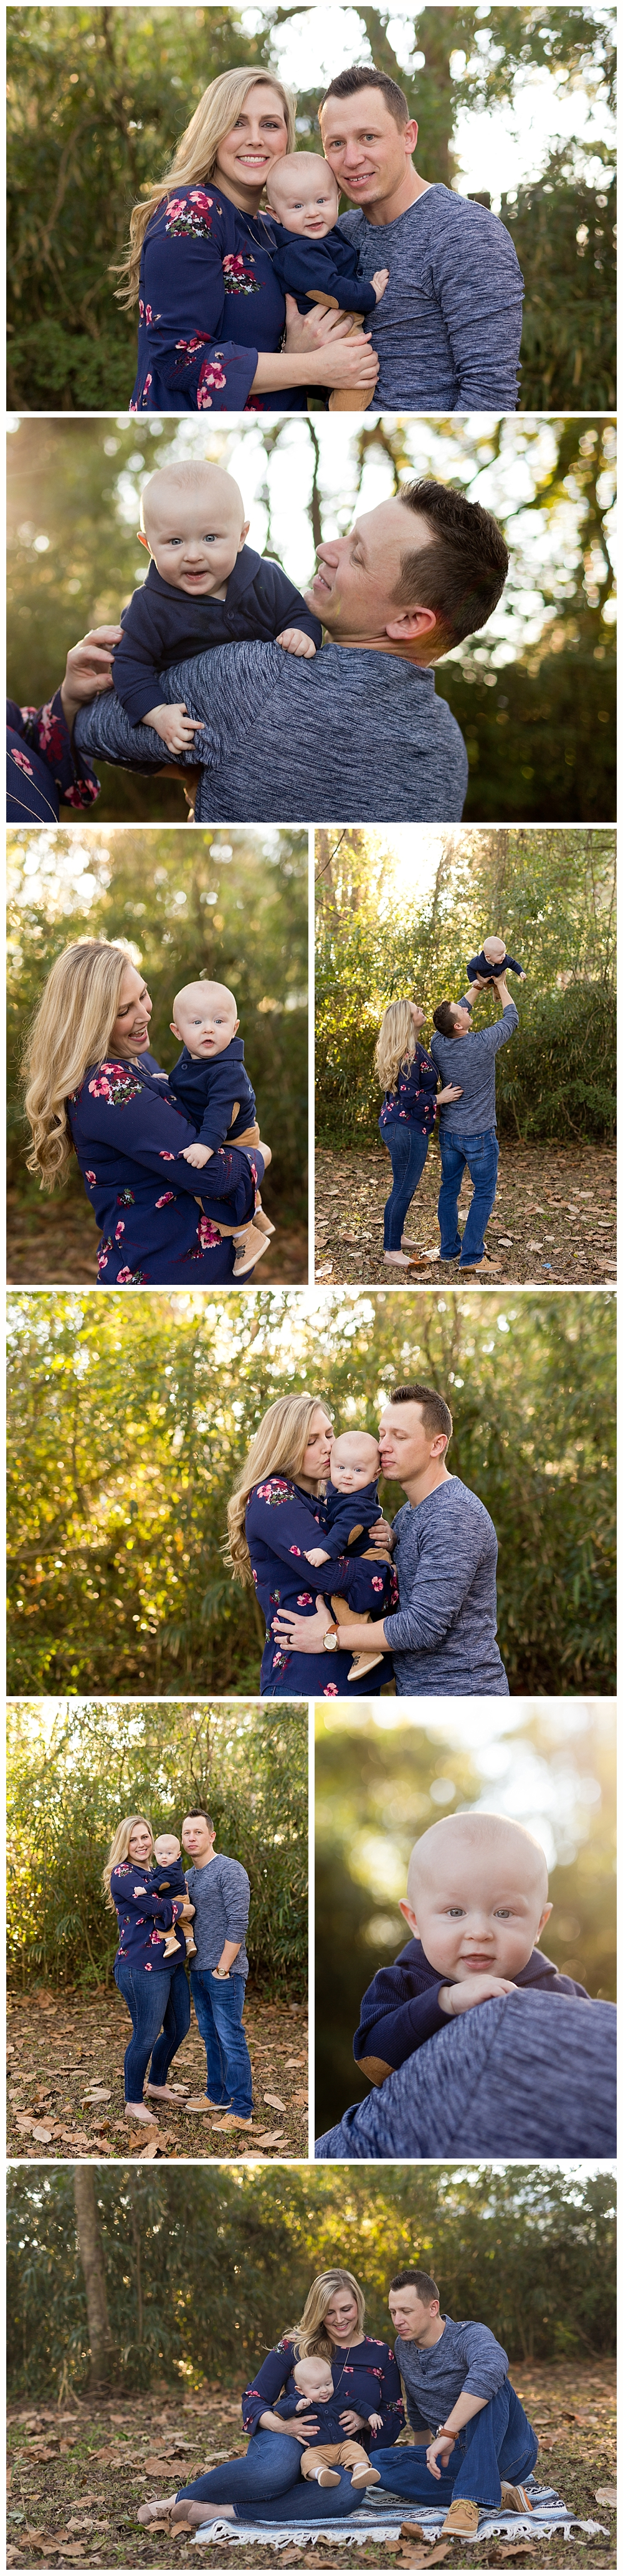 Ocean Springs family pictures - baby boy with parents - Mississippi Gulf Coast Photographer